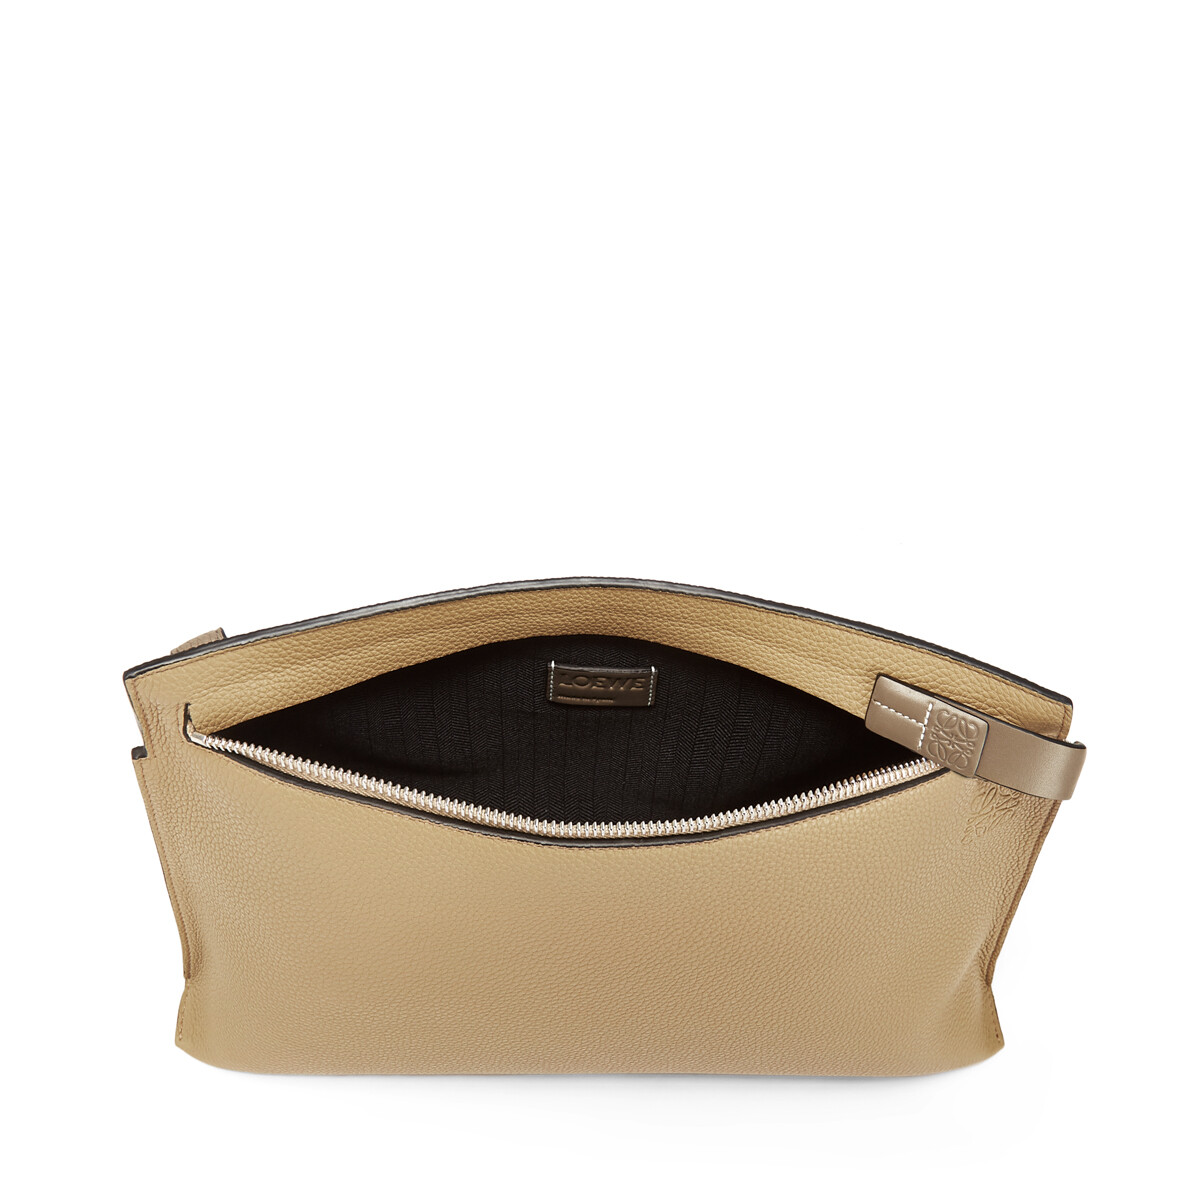 LOEWE T Pouch Bicolor Beige Desierto/Topo Oscuro front